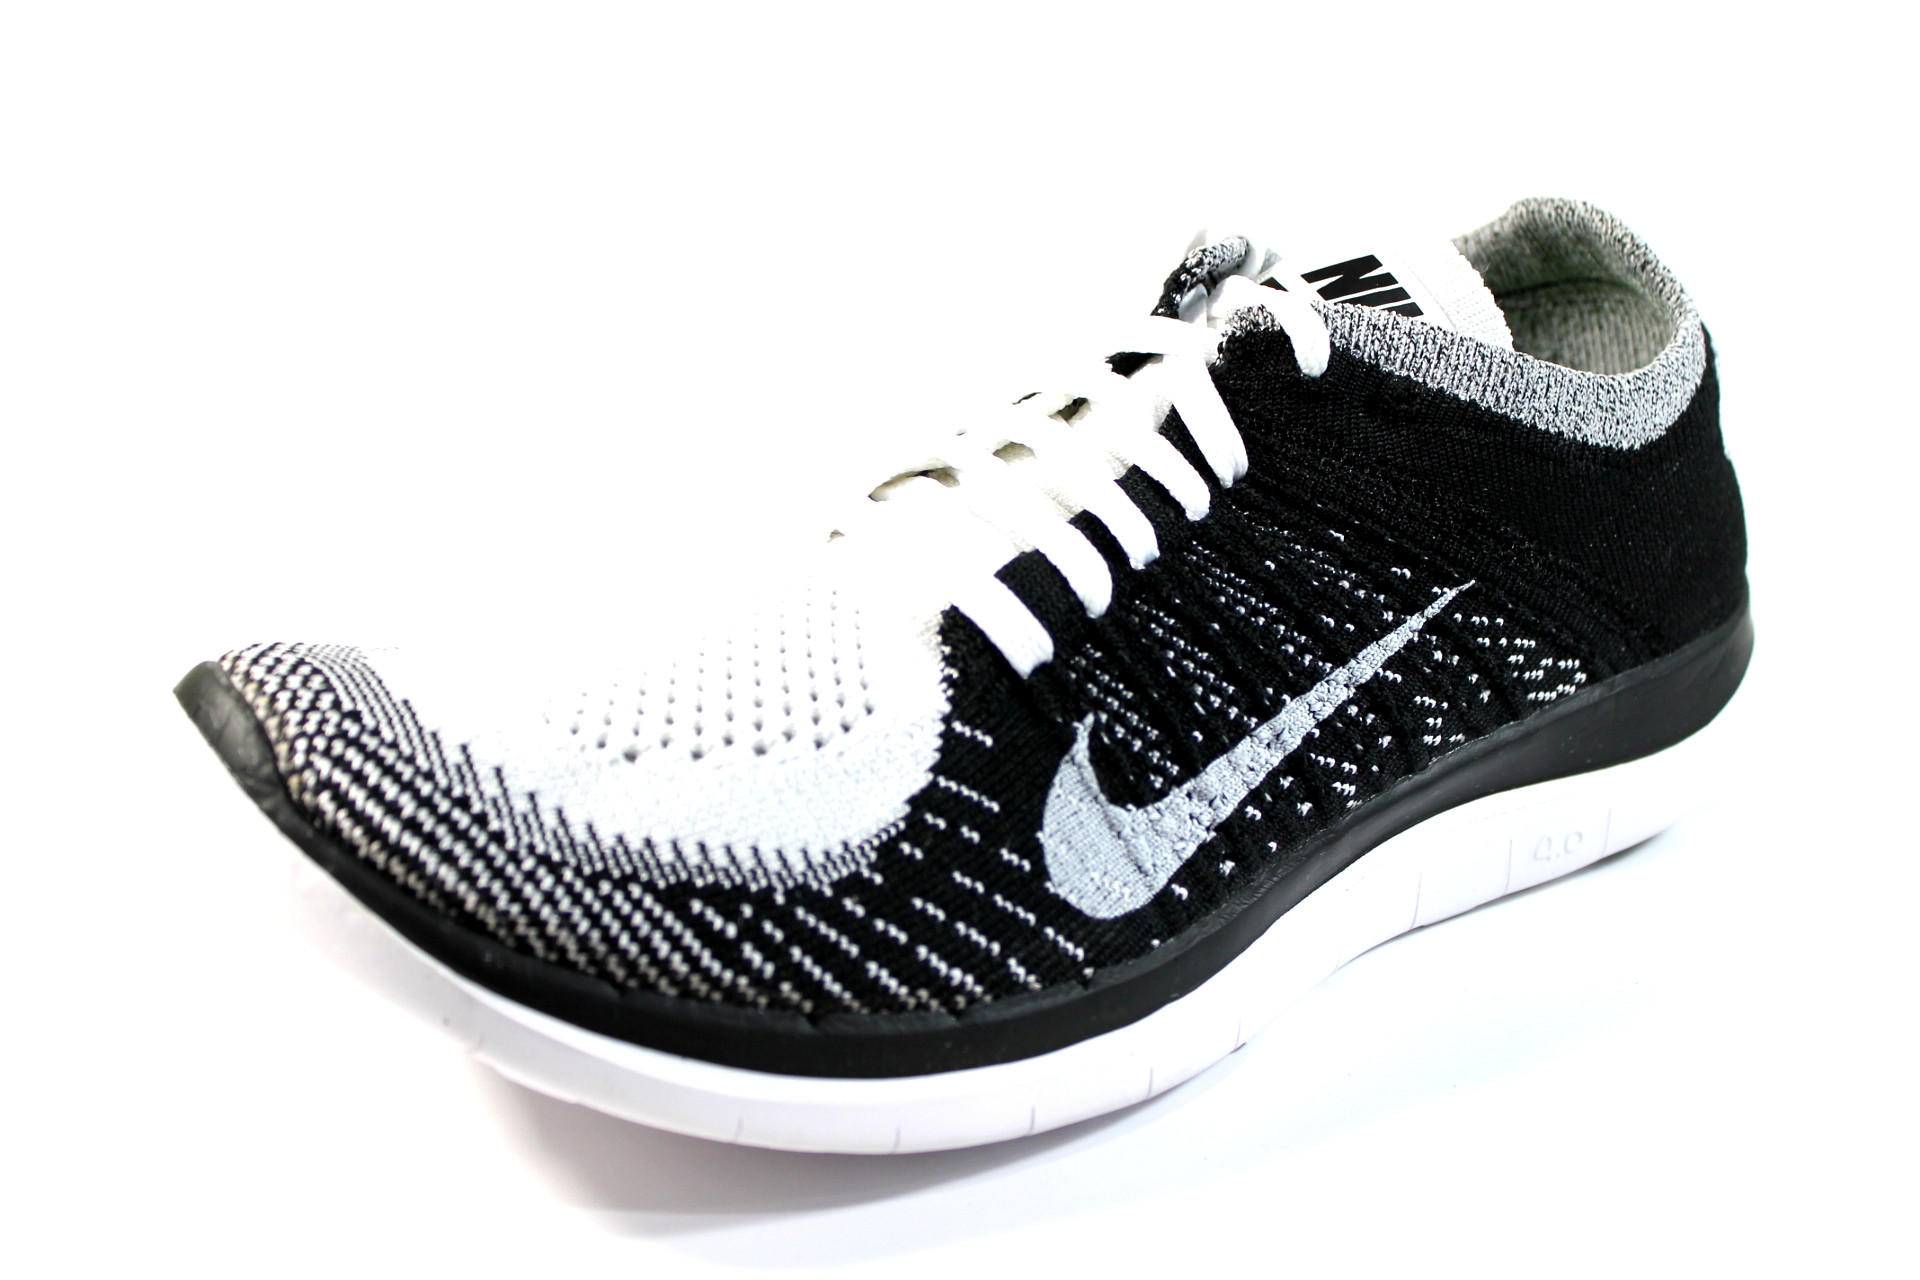 hot sales uk trainers nike free shoes womens diamond wanelo.co 03b7a4cef0 5d4725948b9b